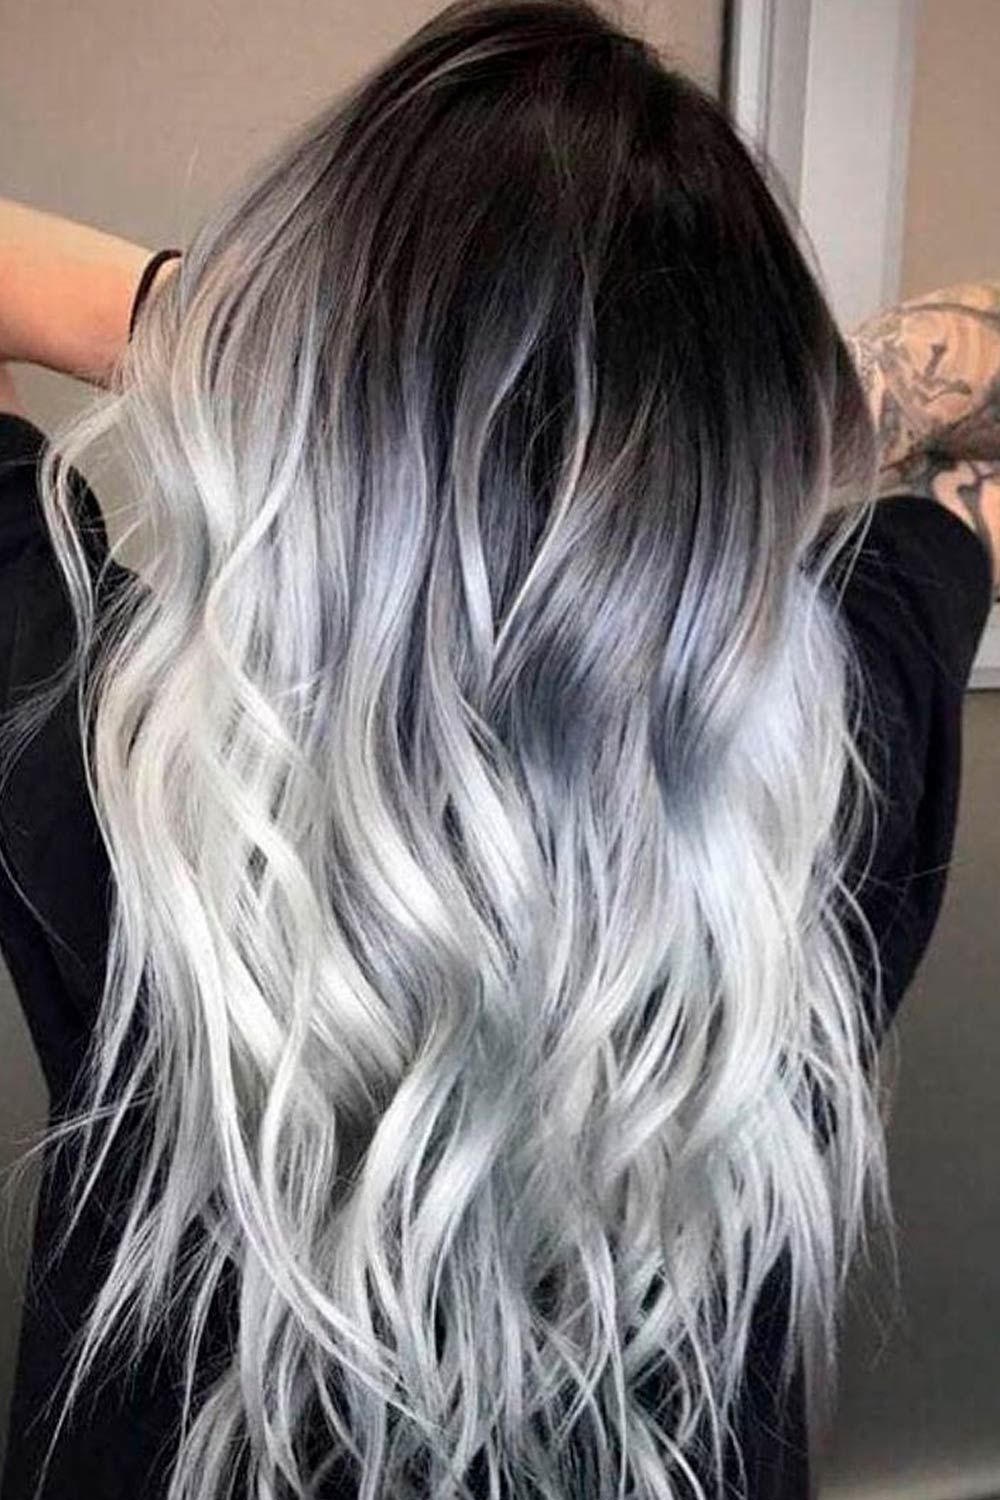 Deep Dark Balayage, what is salt and pepper look, salt and pepper hair meaning